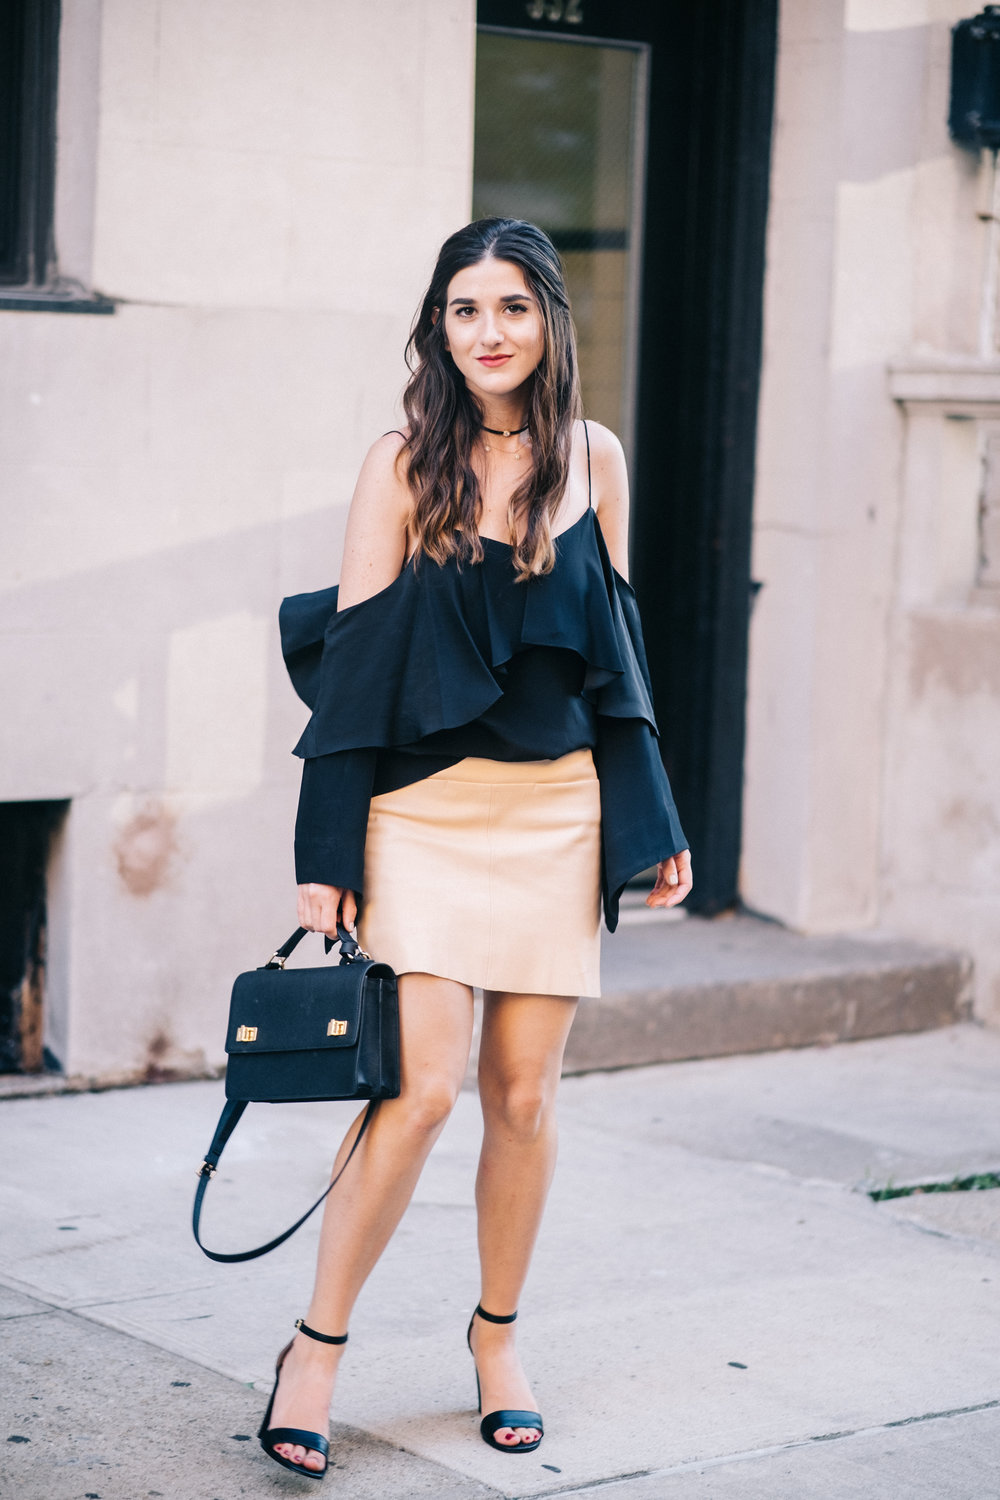 The+Perfect+Everyday+Bag+Henri+Bendel+Louboutins+&+Love+Fashion+Blog+Esther+Santer+NYC+Street+Style+Blogger+Outfit+OOTD+Trendy+Jay+Godfrey+Black+Cold+Shoulder+Top+Pink+Pleather+Skirt+Zara+Ivanka+Trump+Klover+Sandals+Heels+Inspo+Women+Purse+Girl+Hair.jpg